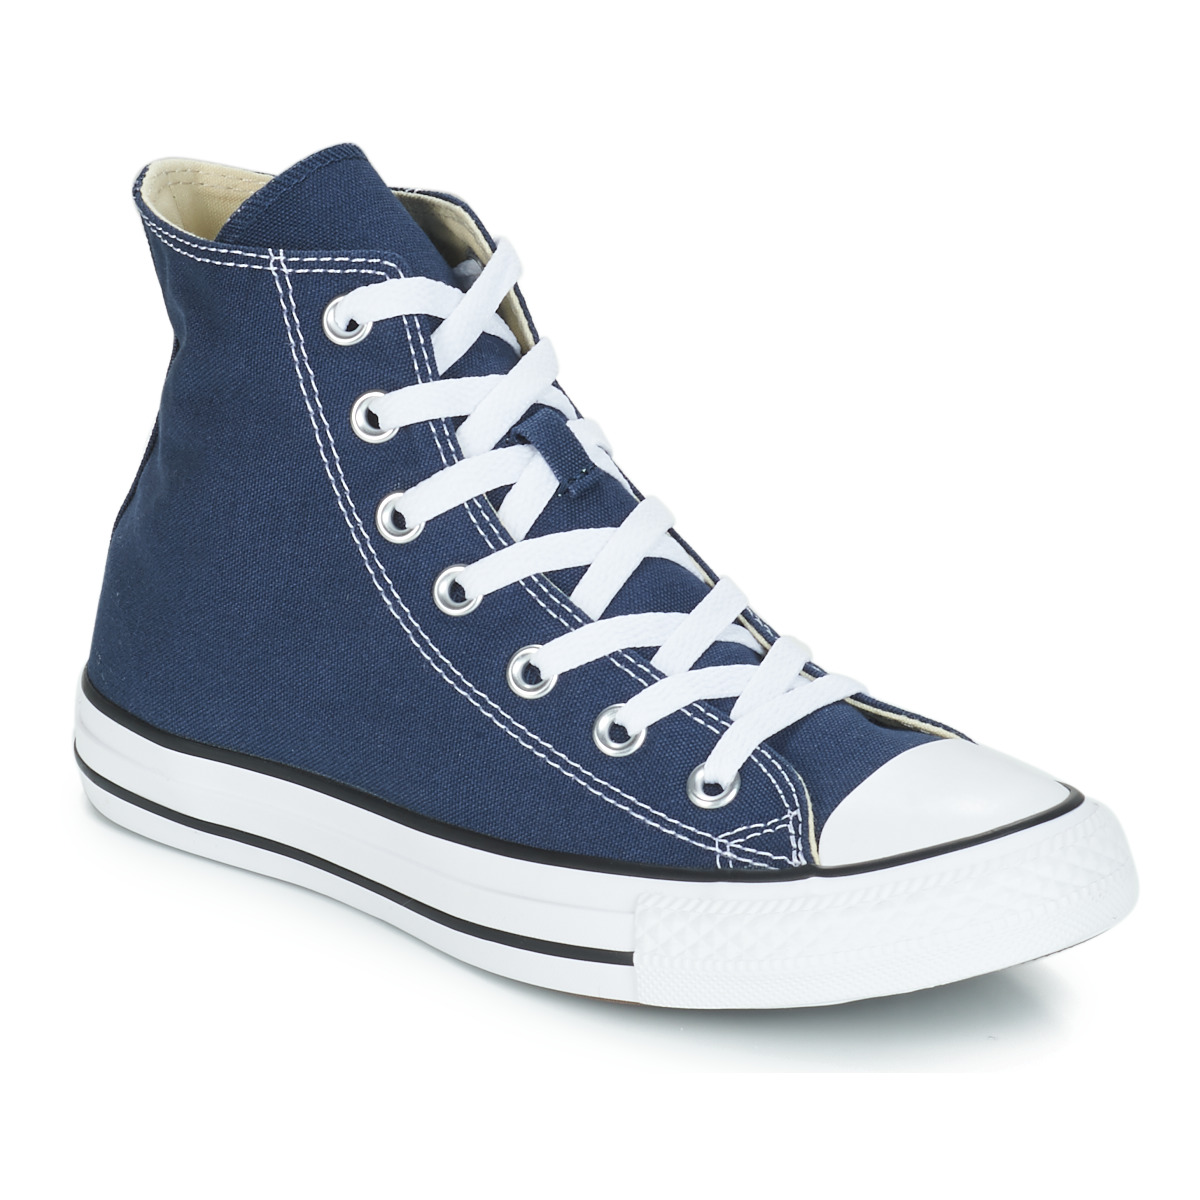 Converse ALL STAR CORE HI Navy